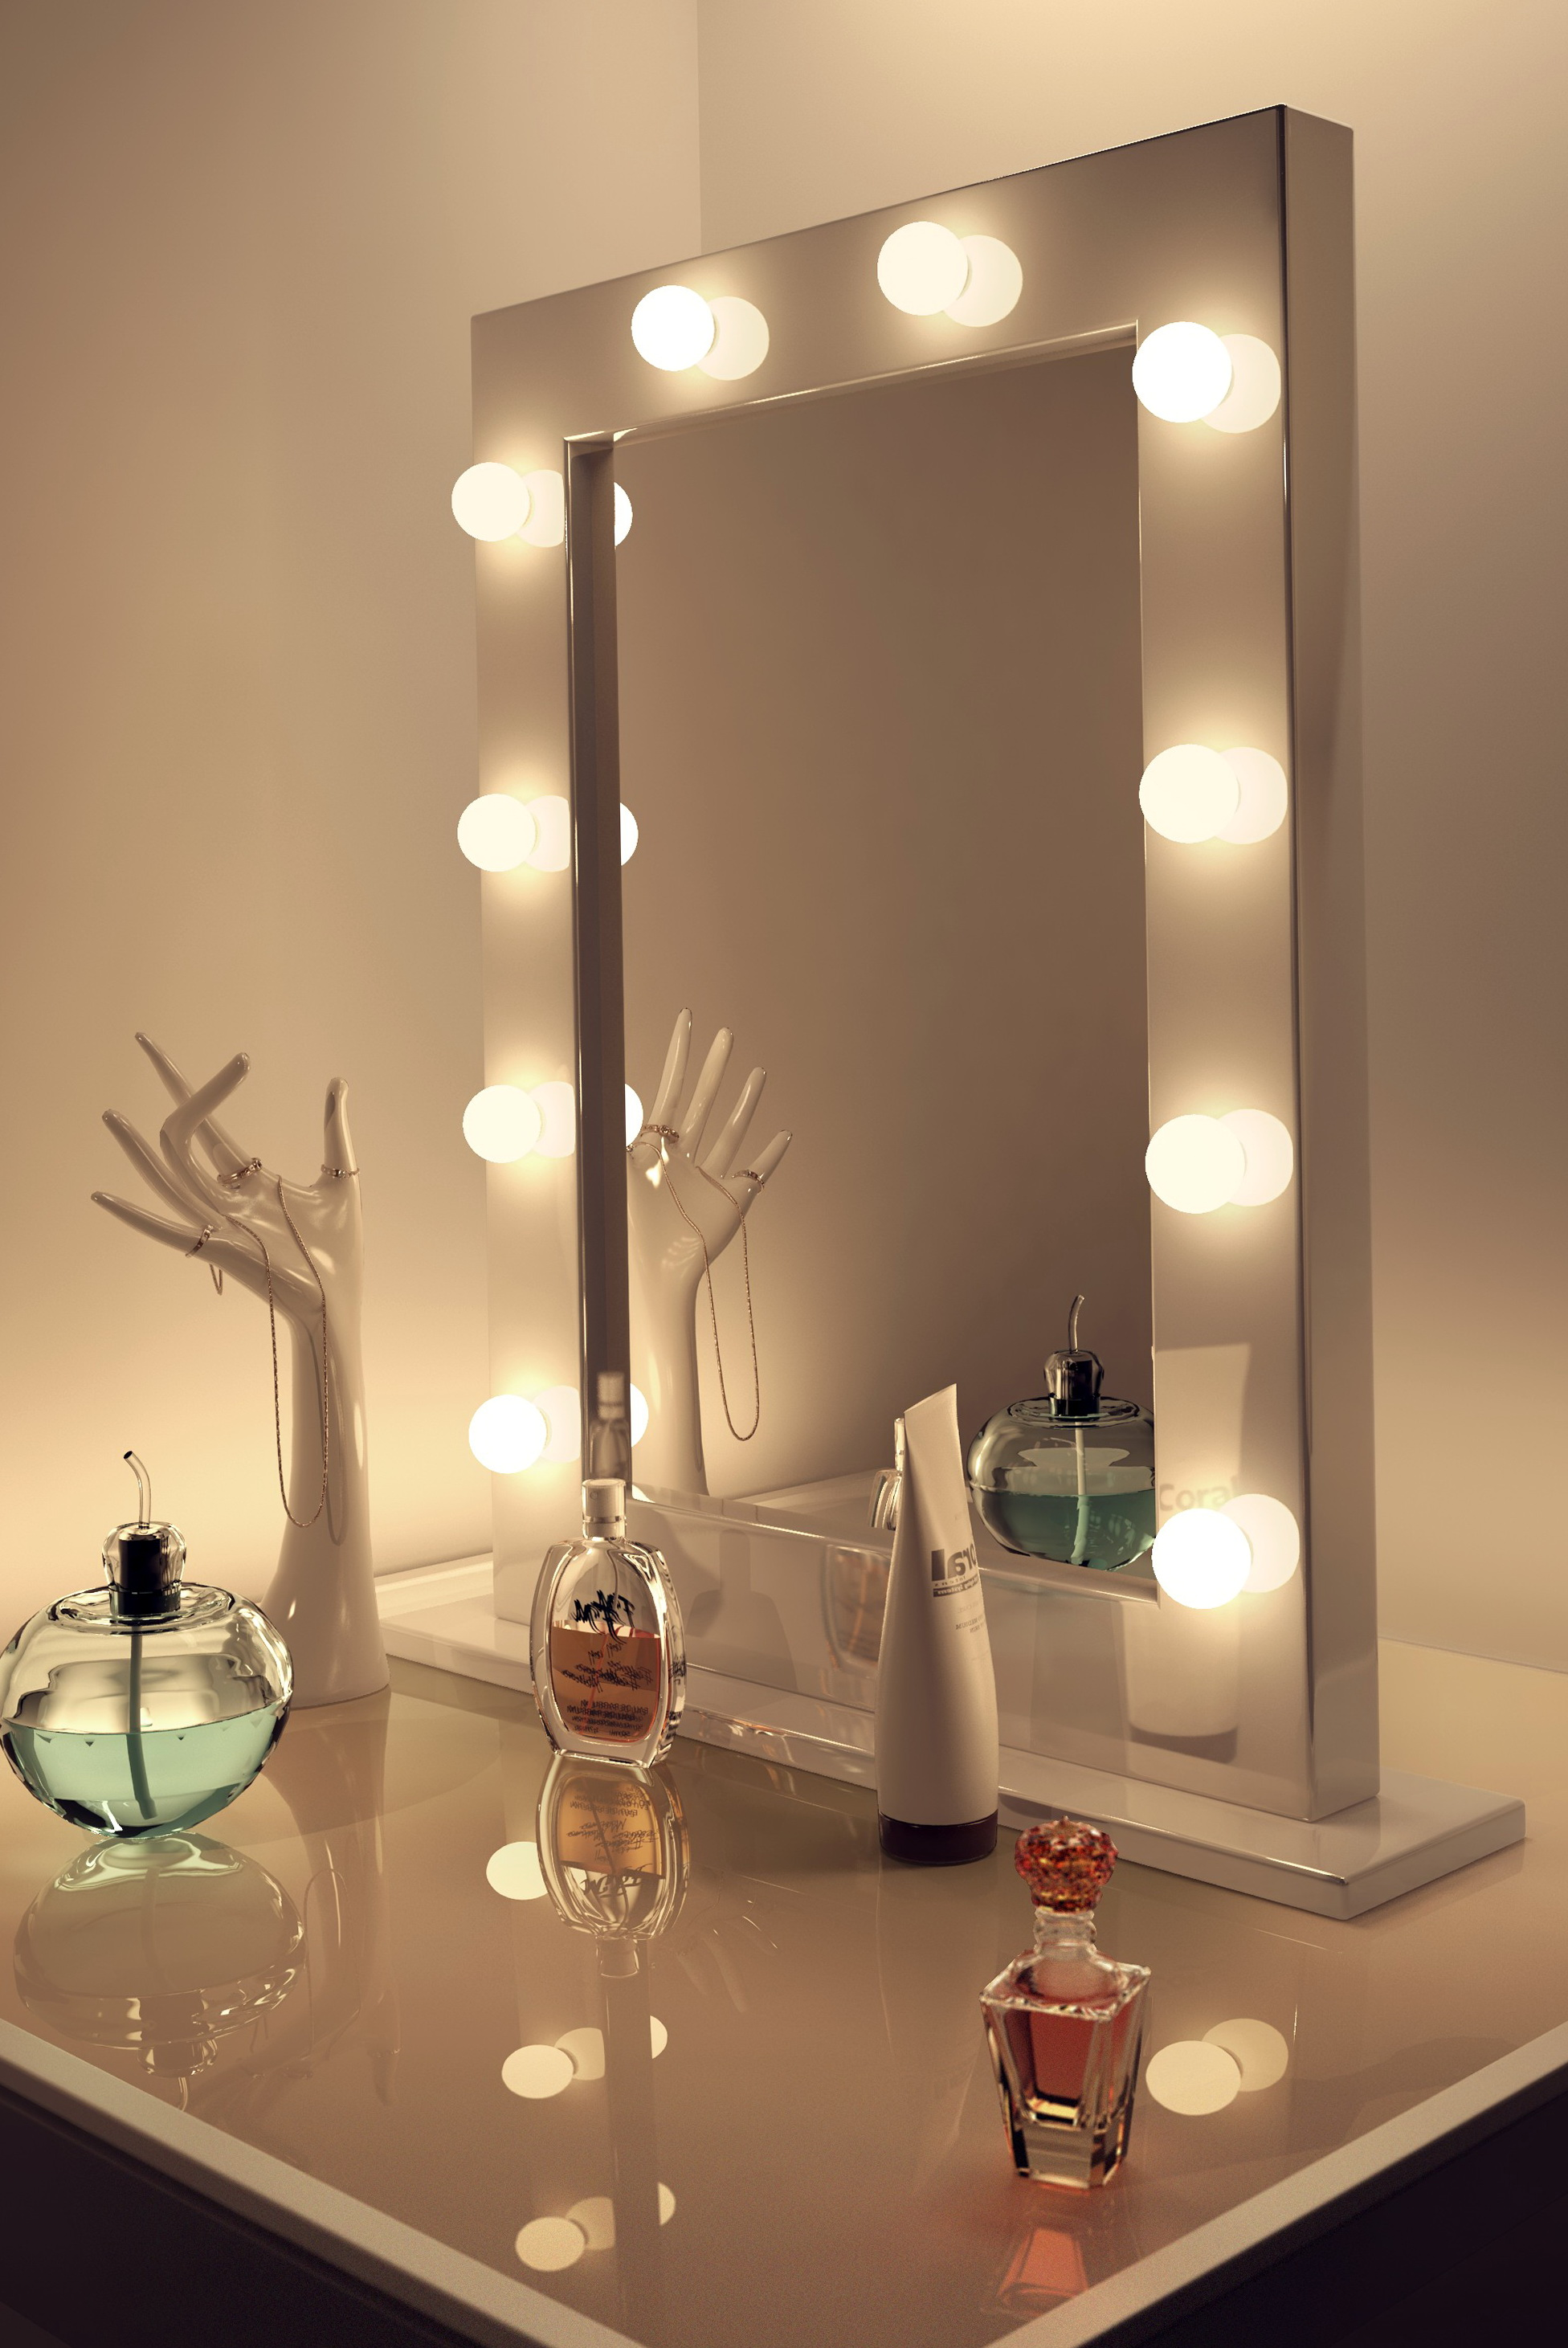 Vanity Mirror With Lights Uk Home Design Ideas